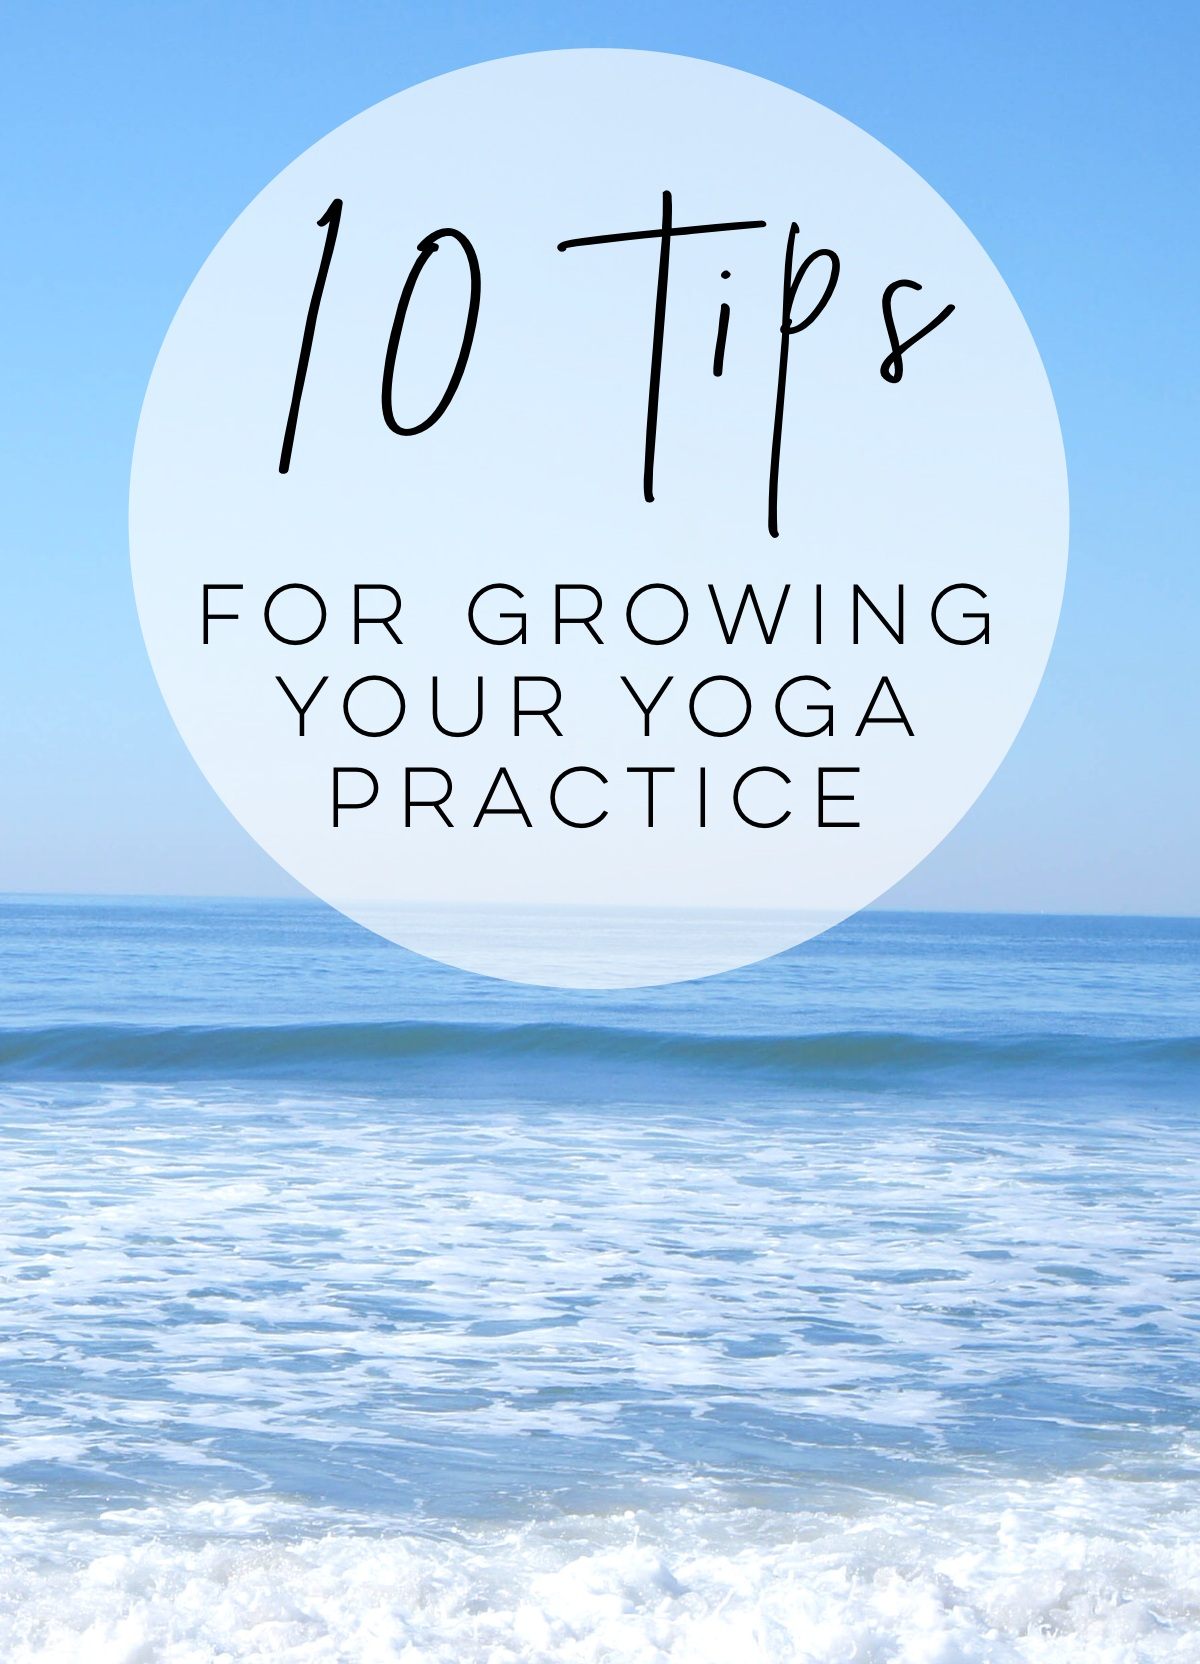 10+Tips+for+Growing+Your+Yoga+Practice